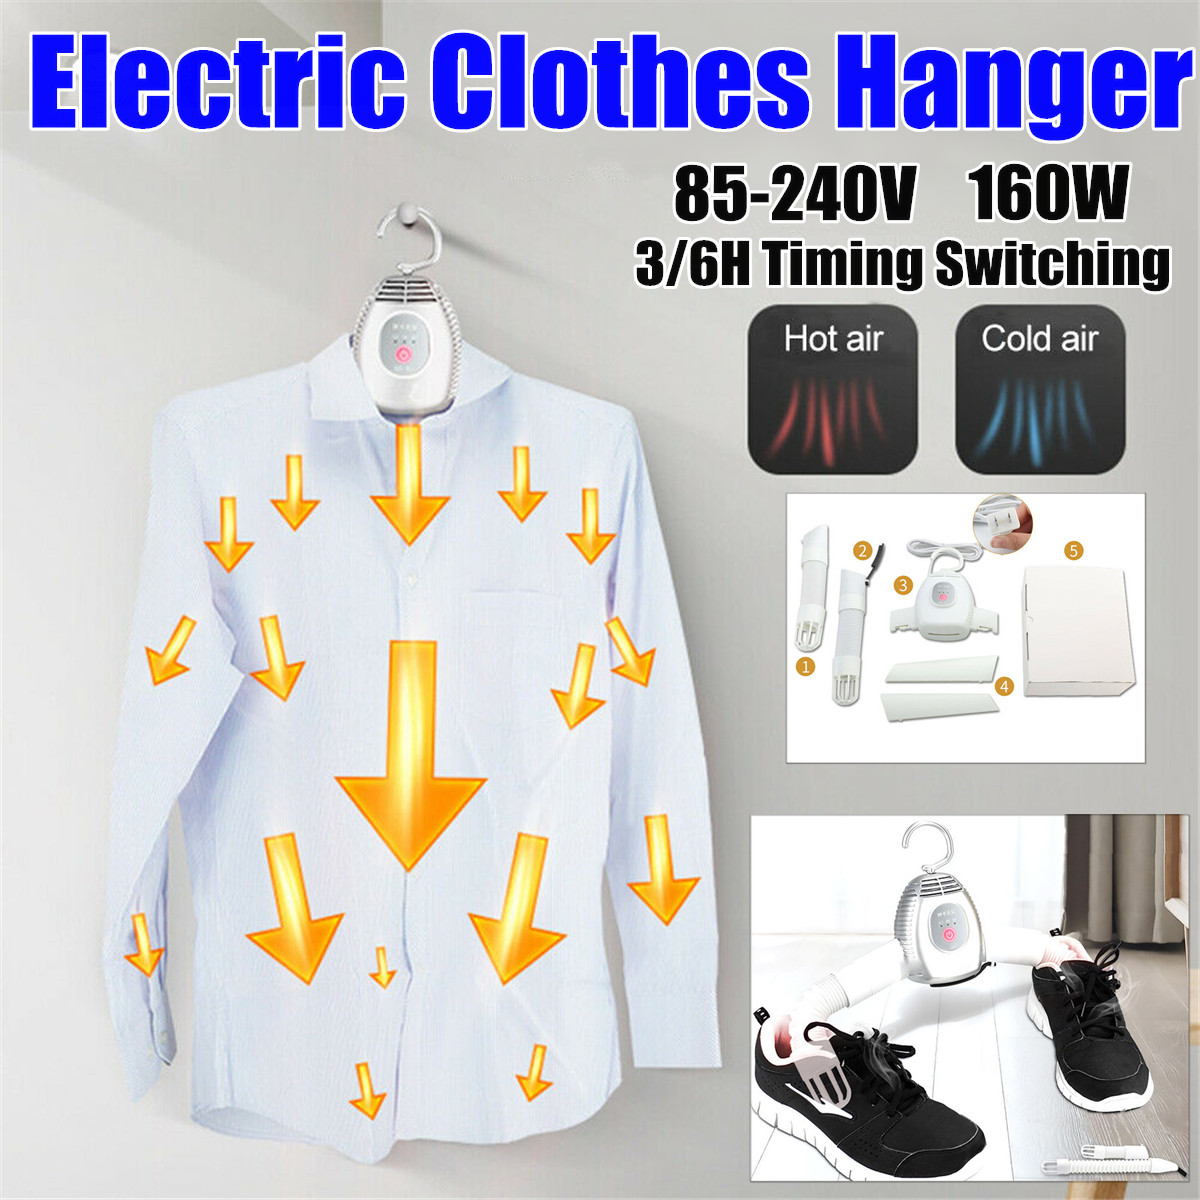 85-240V Electric Clothes Drying Rack Smart Clothes Hanger Dryer Rack Portable Outdoor Travel Mini Folding Clothing Shoes Heater